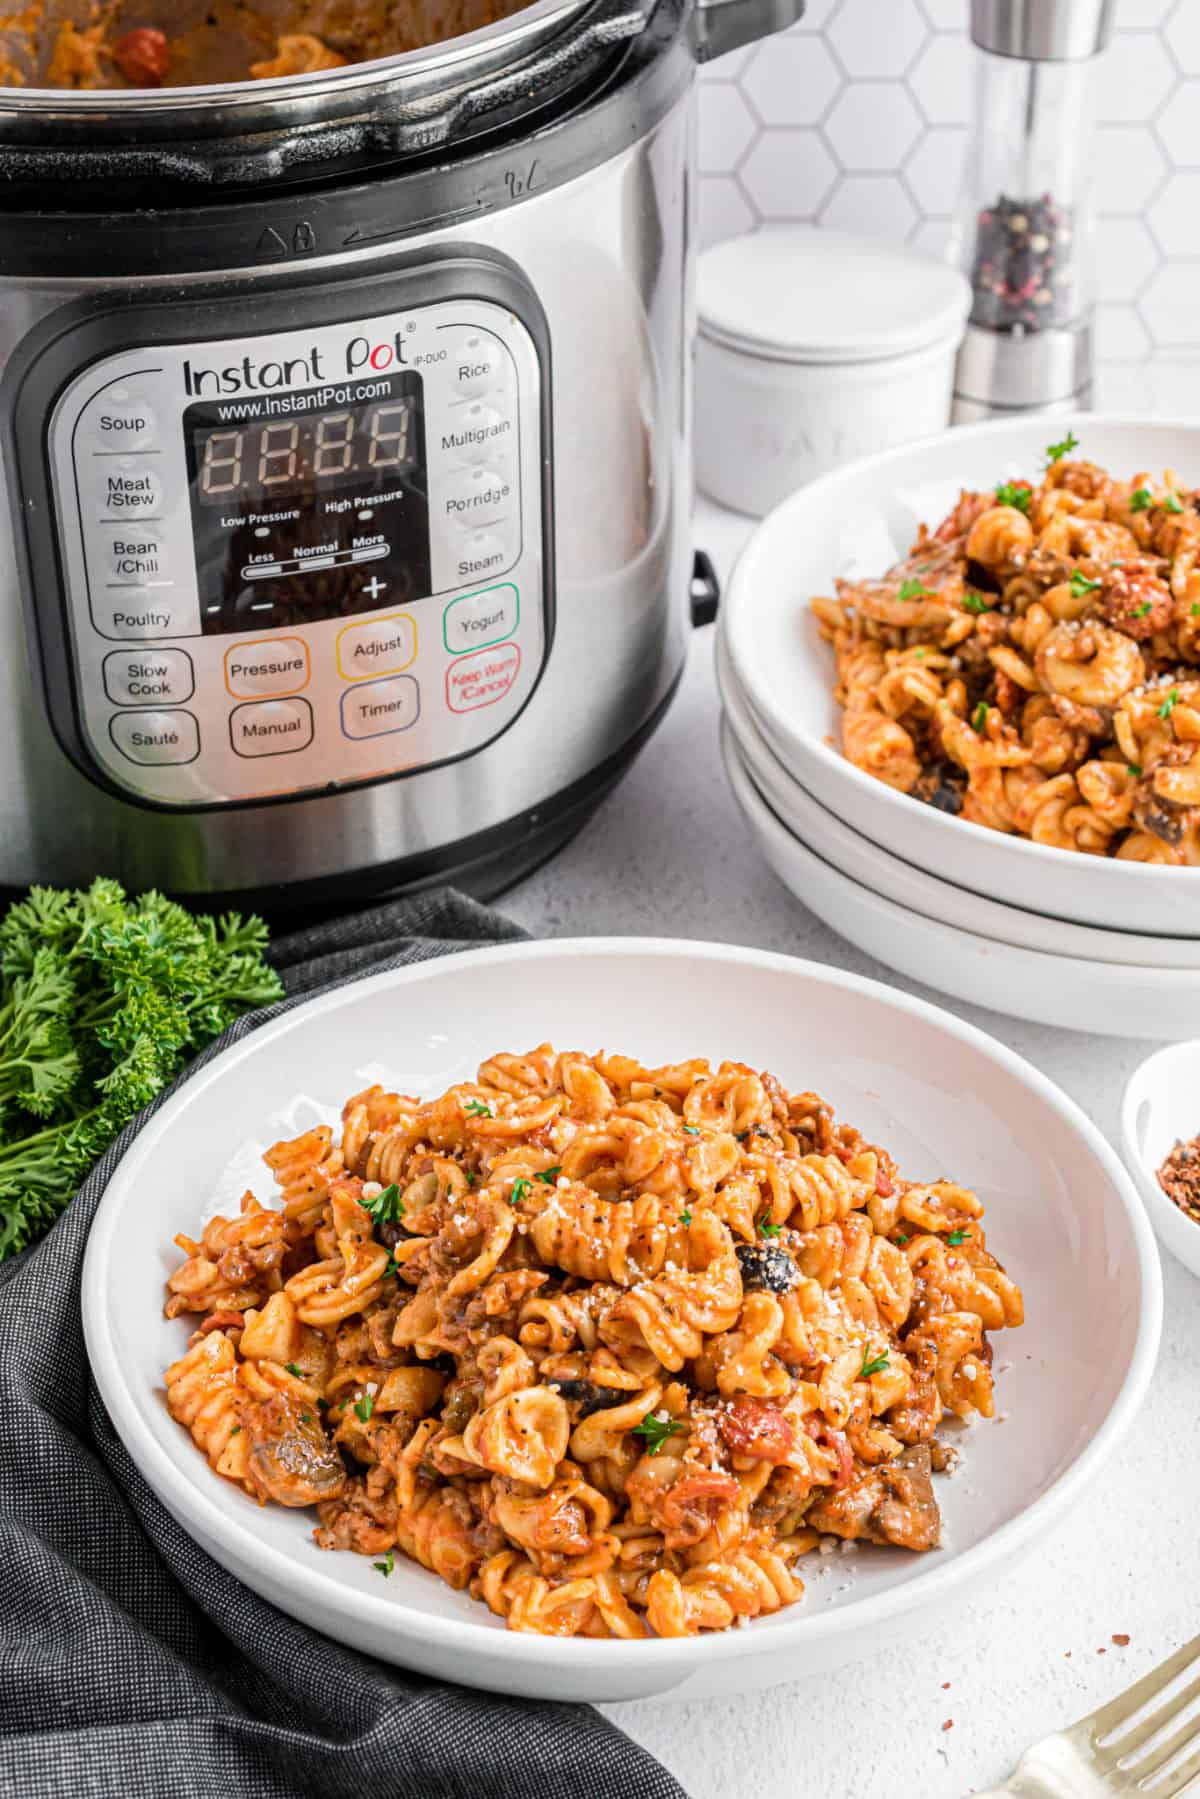 Pizza pasta in a bowl with instant pot in background.